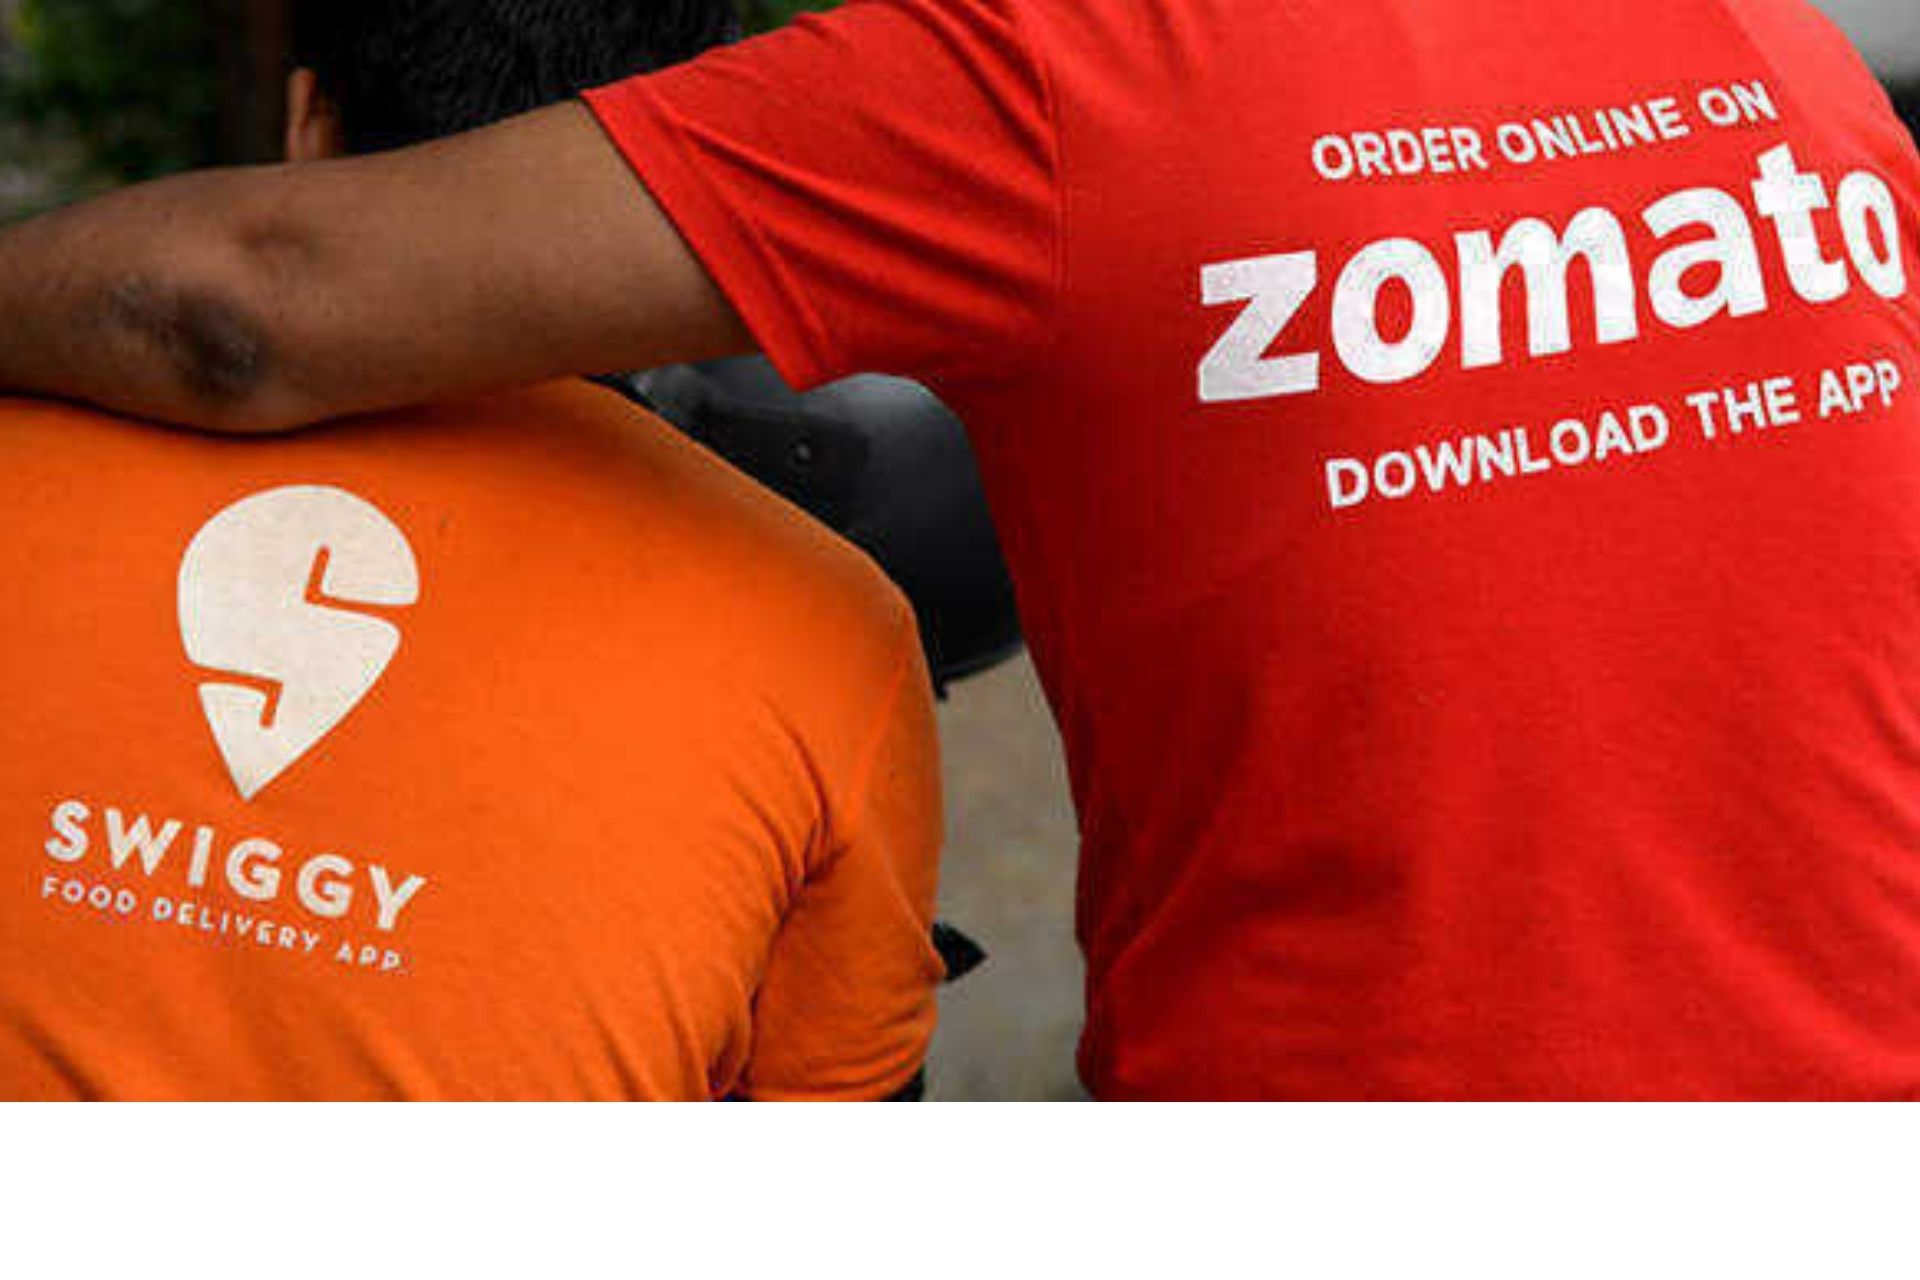 NRAI files more info with CCI regarding high commissions and late payments against IPO-bound Zomato and Swiggy